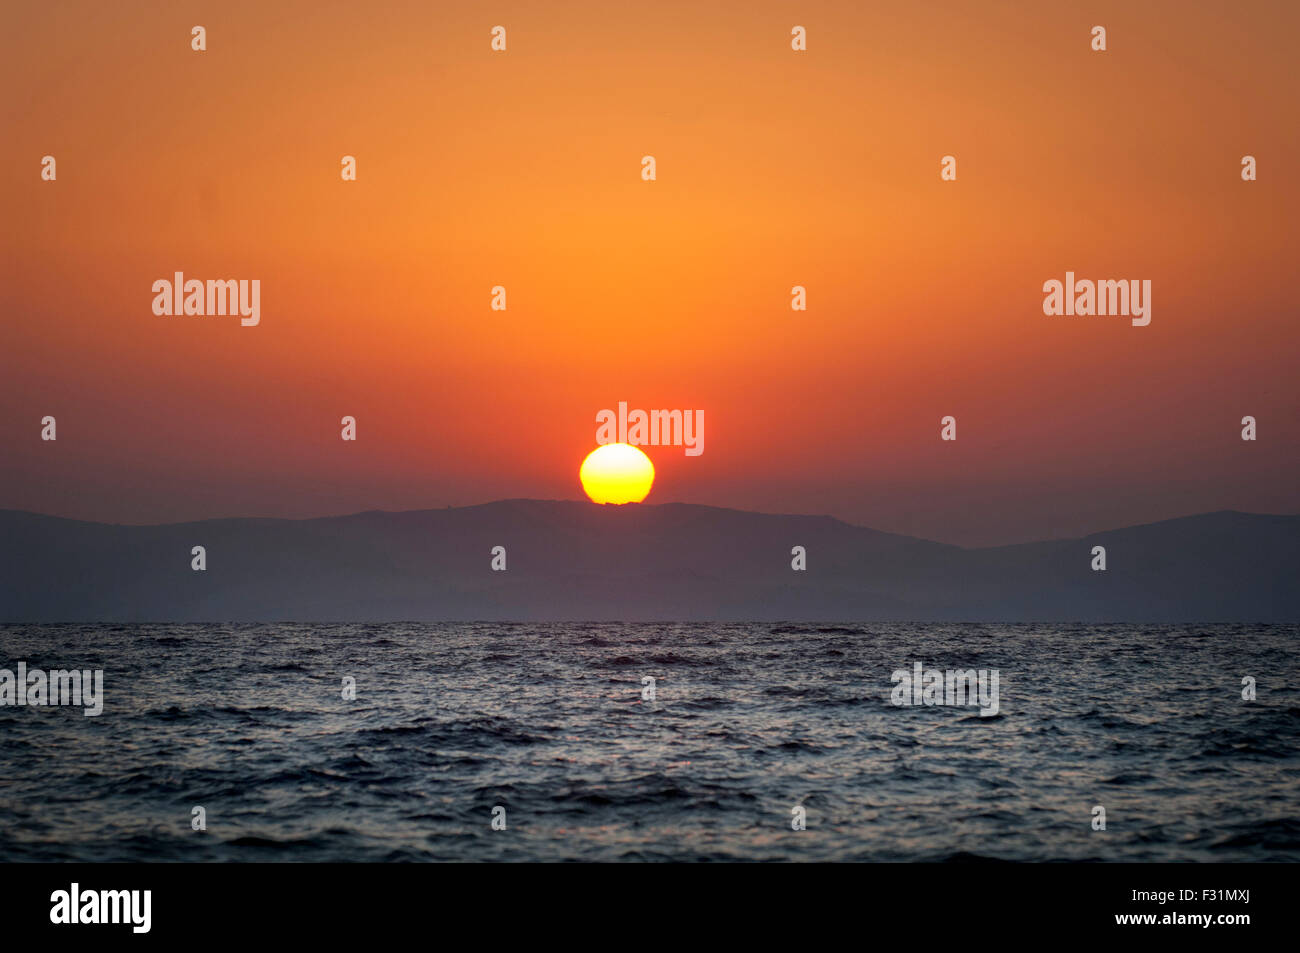 Sun rise over western Turkey. Photographed from the Island of Lesbos, Greece. - Stock Image